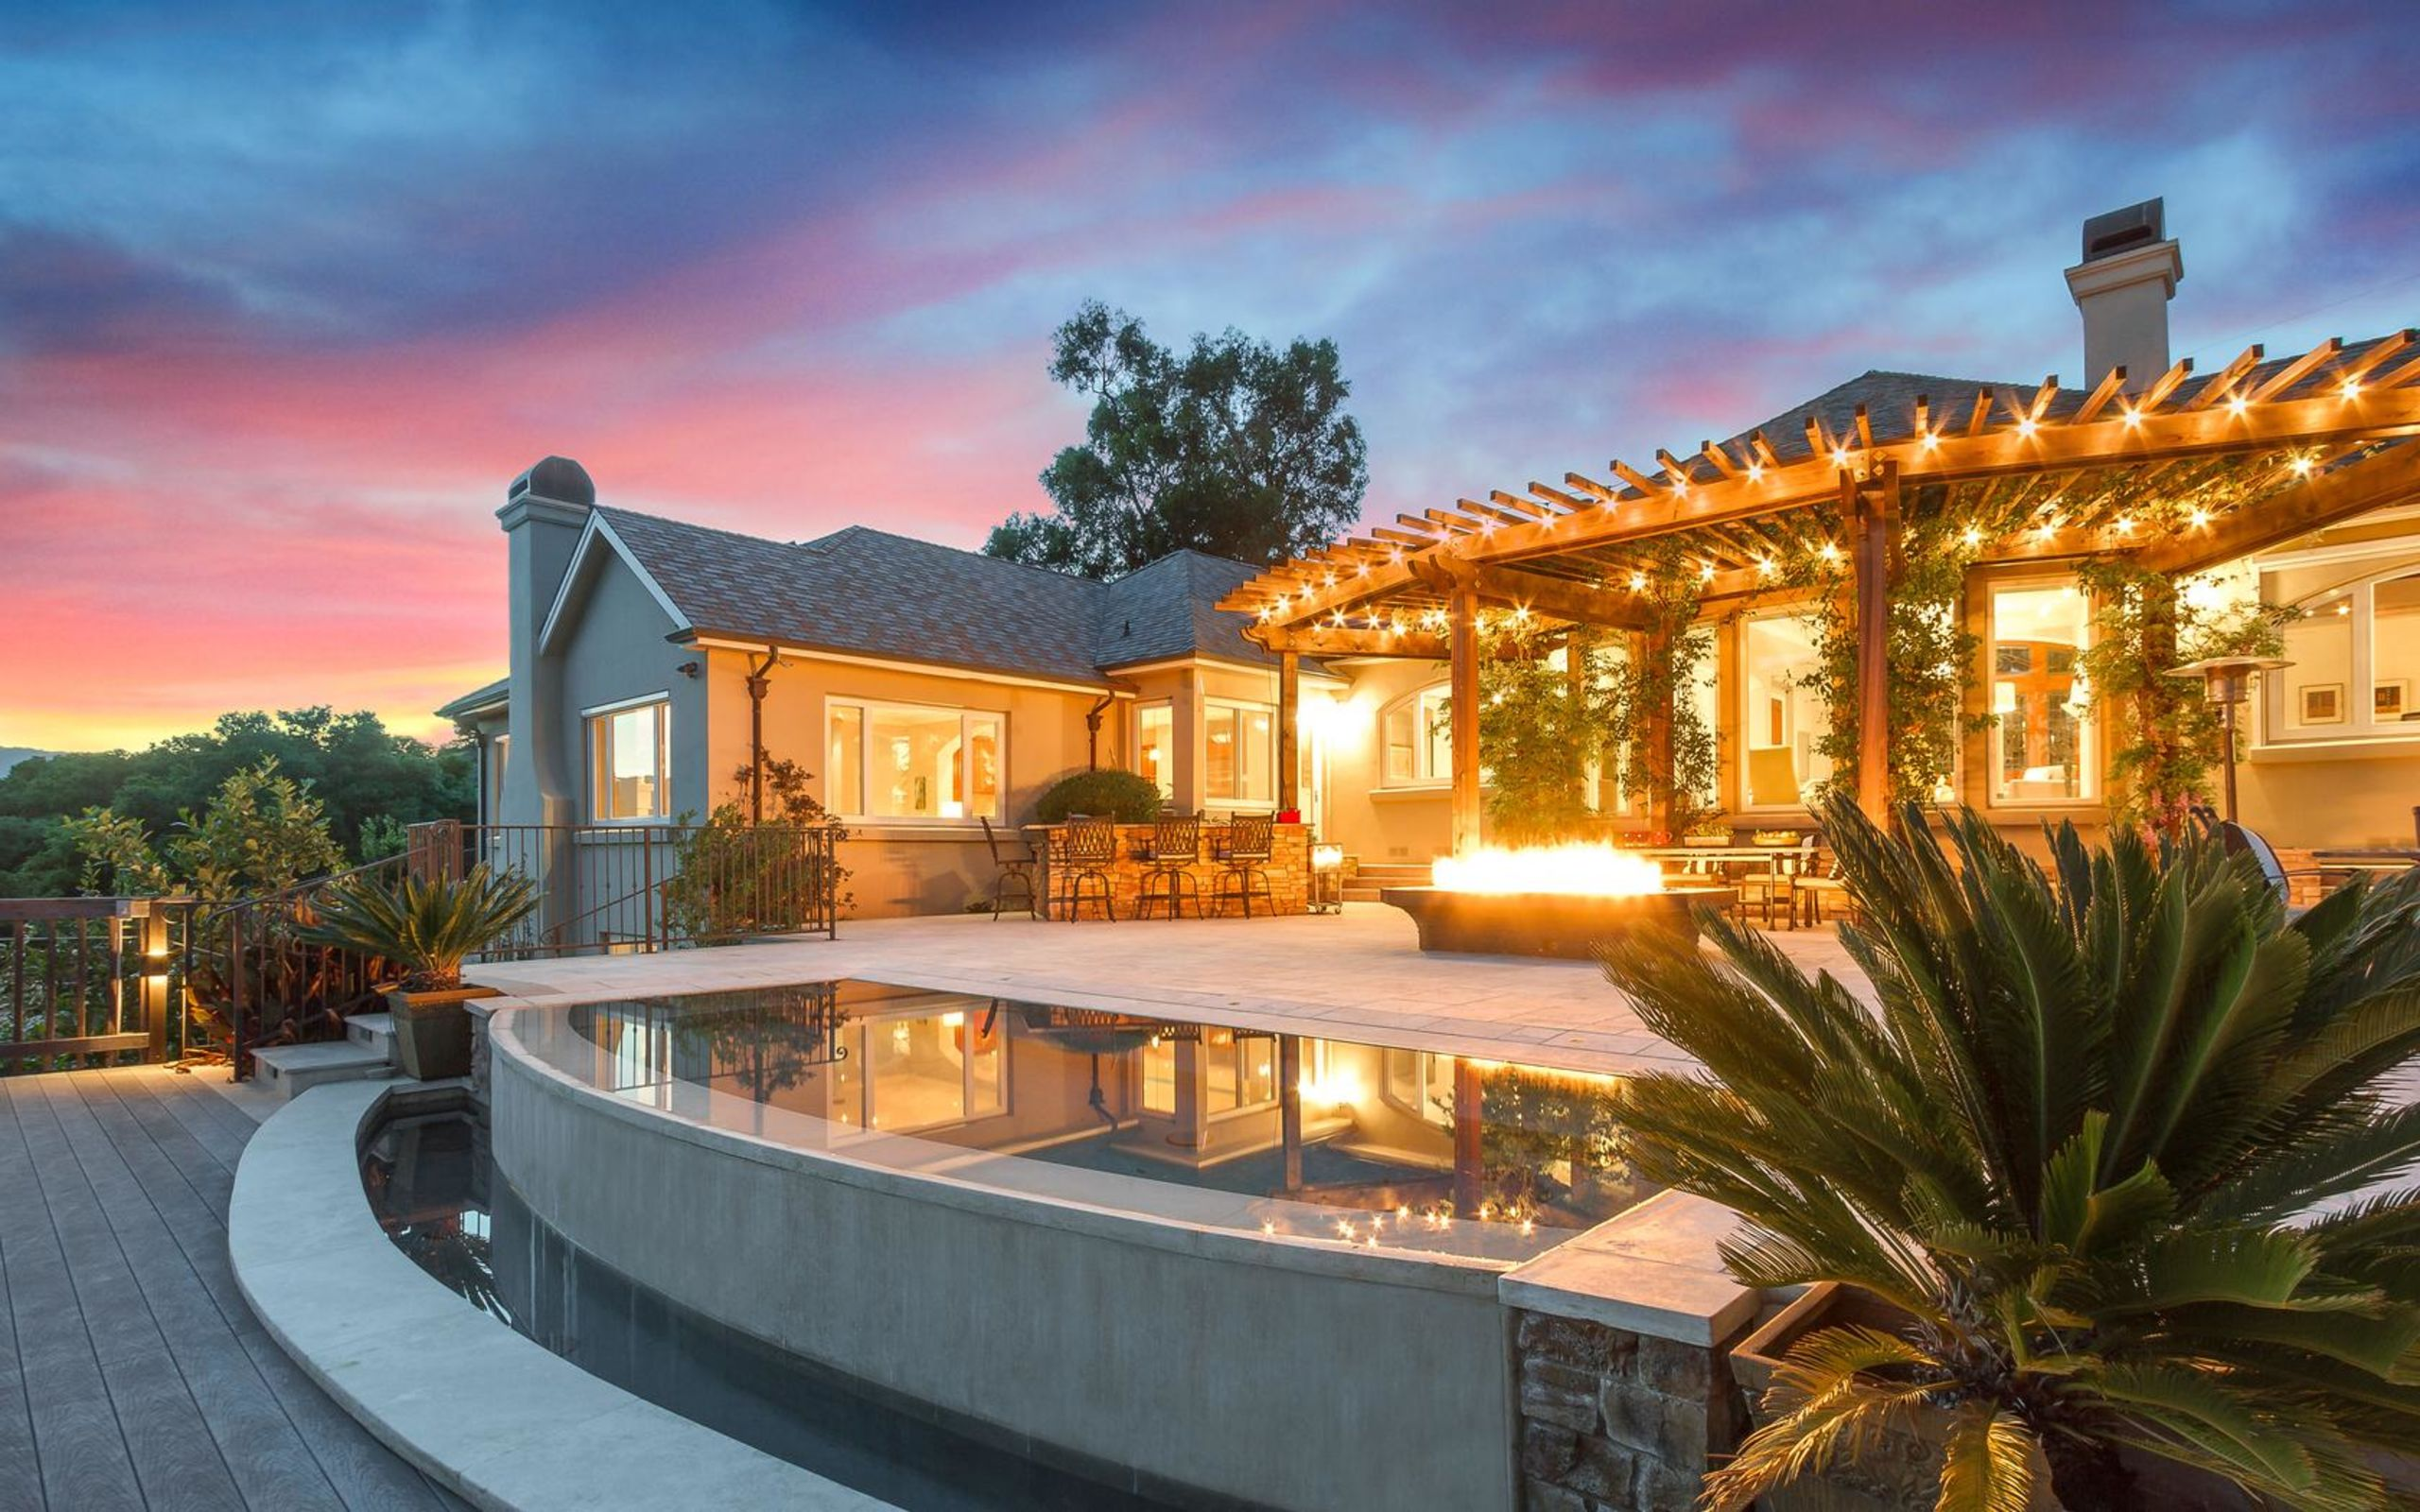 As an experienced Realtor of luxury properties, Jim utilizes the latest in video, 360-degree and drone technologies to showcase your home. This beautiful photo was included in the brochure of one of his luxury listings in Los Gatos Hills, CA.